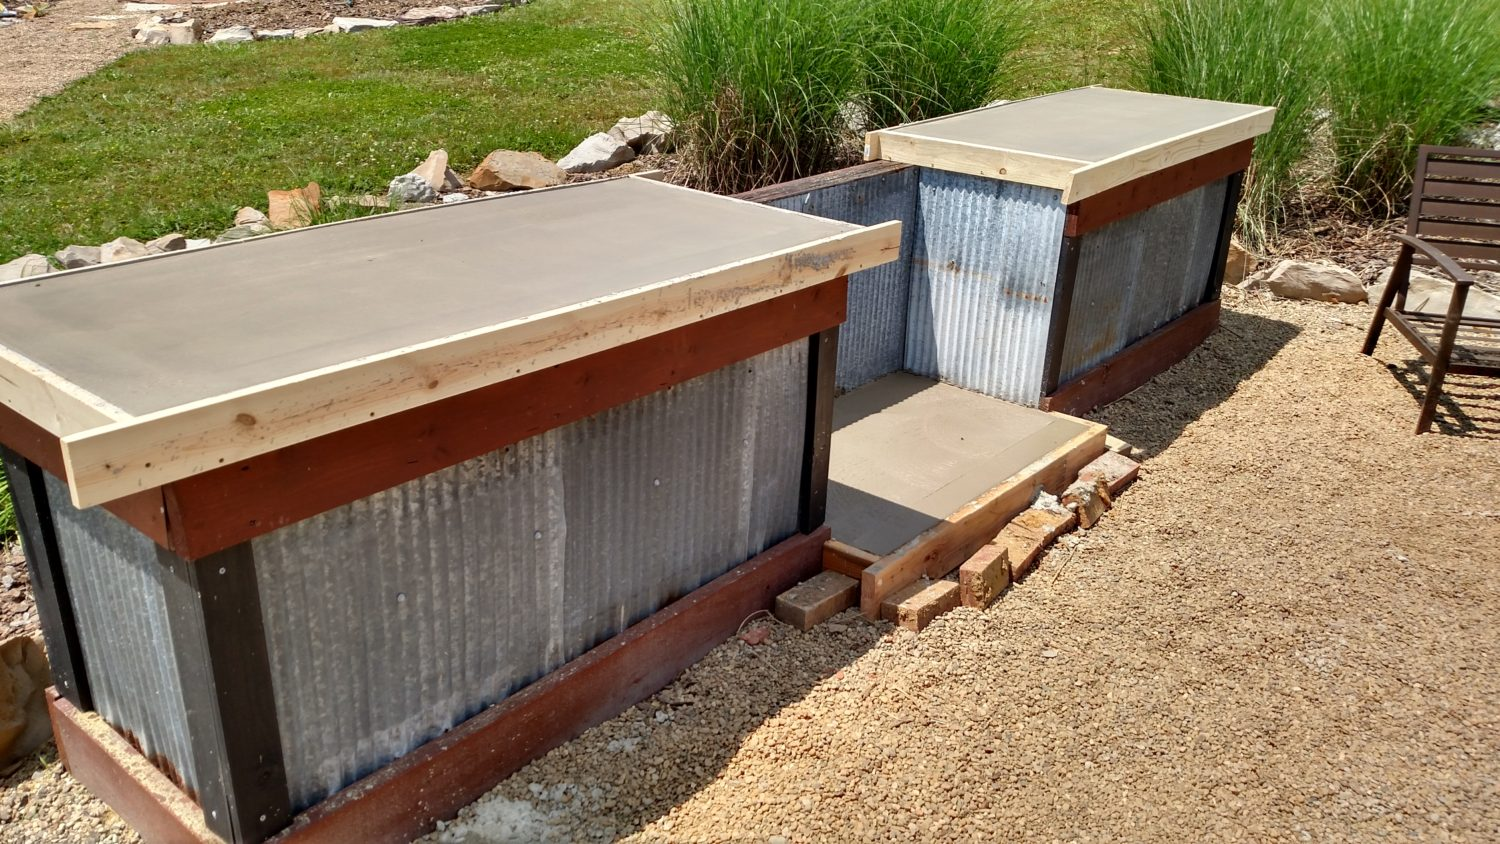 inexpensive kitchen countertops options new cabinets creating an outdoor with concrete ...